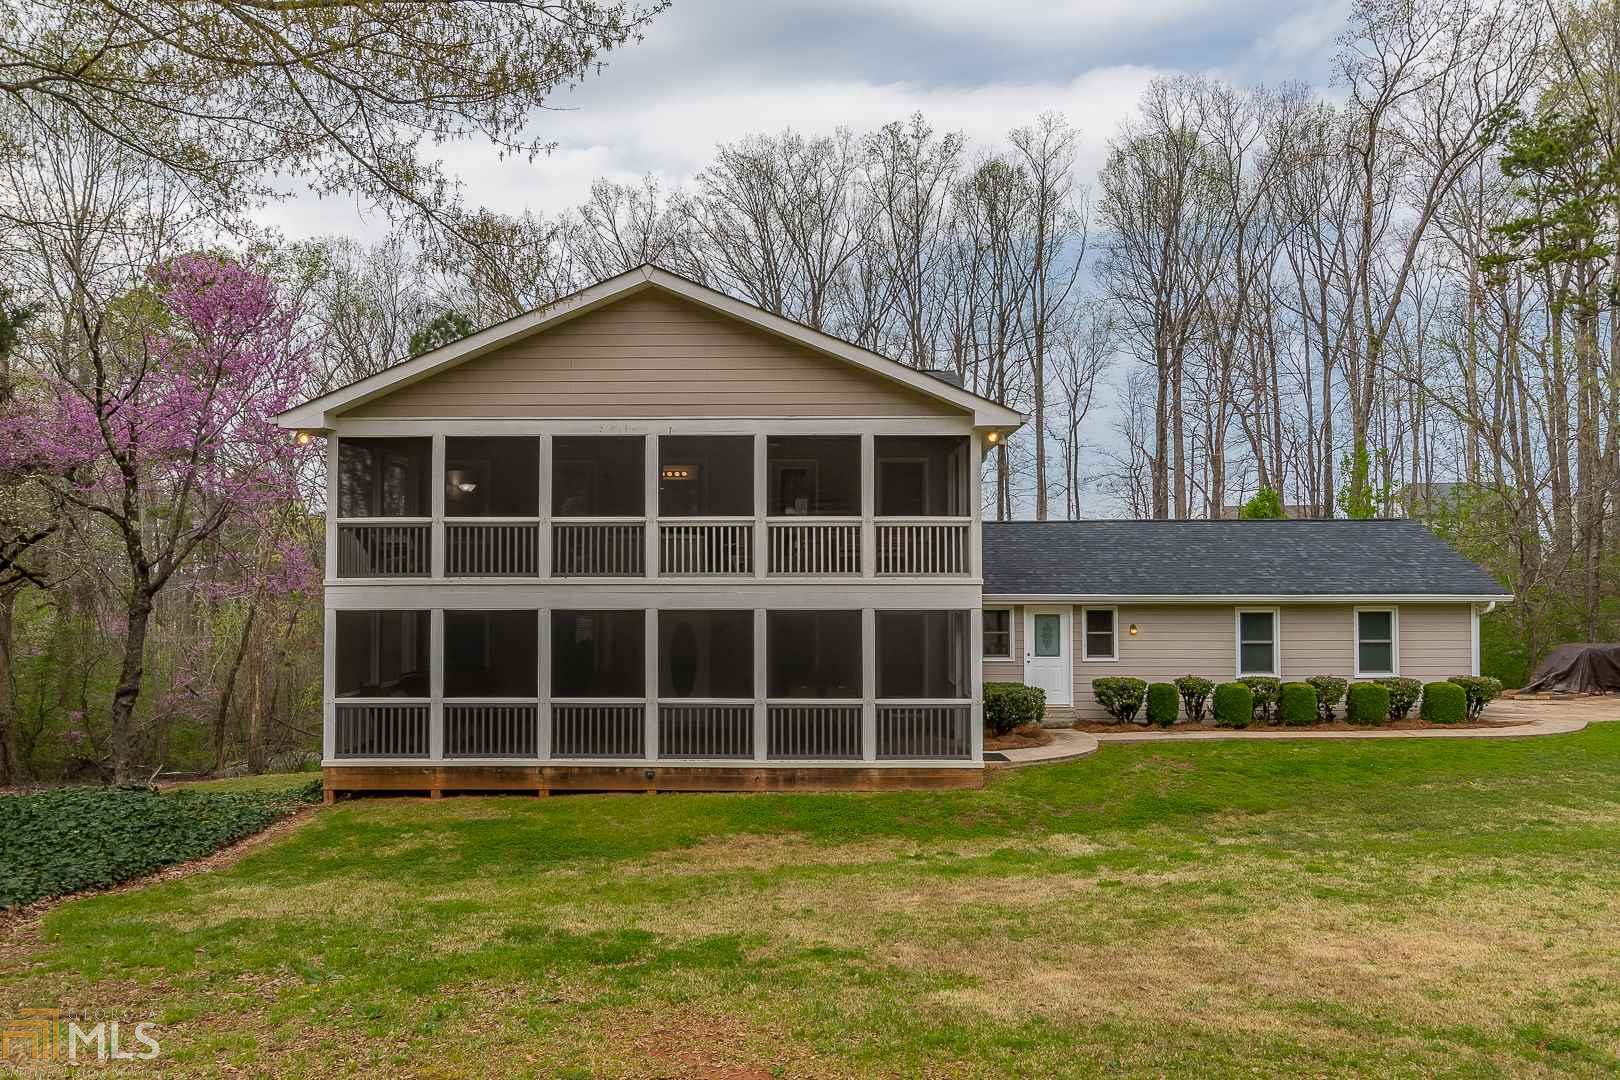 2813 Hutchins Rd, Lawrenceville, Georgia 30044, 4 Bedrooms Bedrooms, ,4 BathroomsBathrooms,Single Family,For Sale,2813 Hutchins Rd,2,8950588